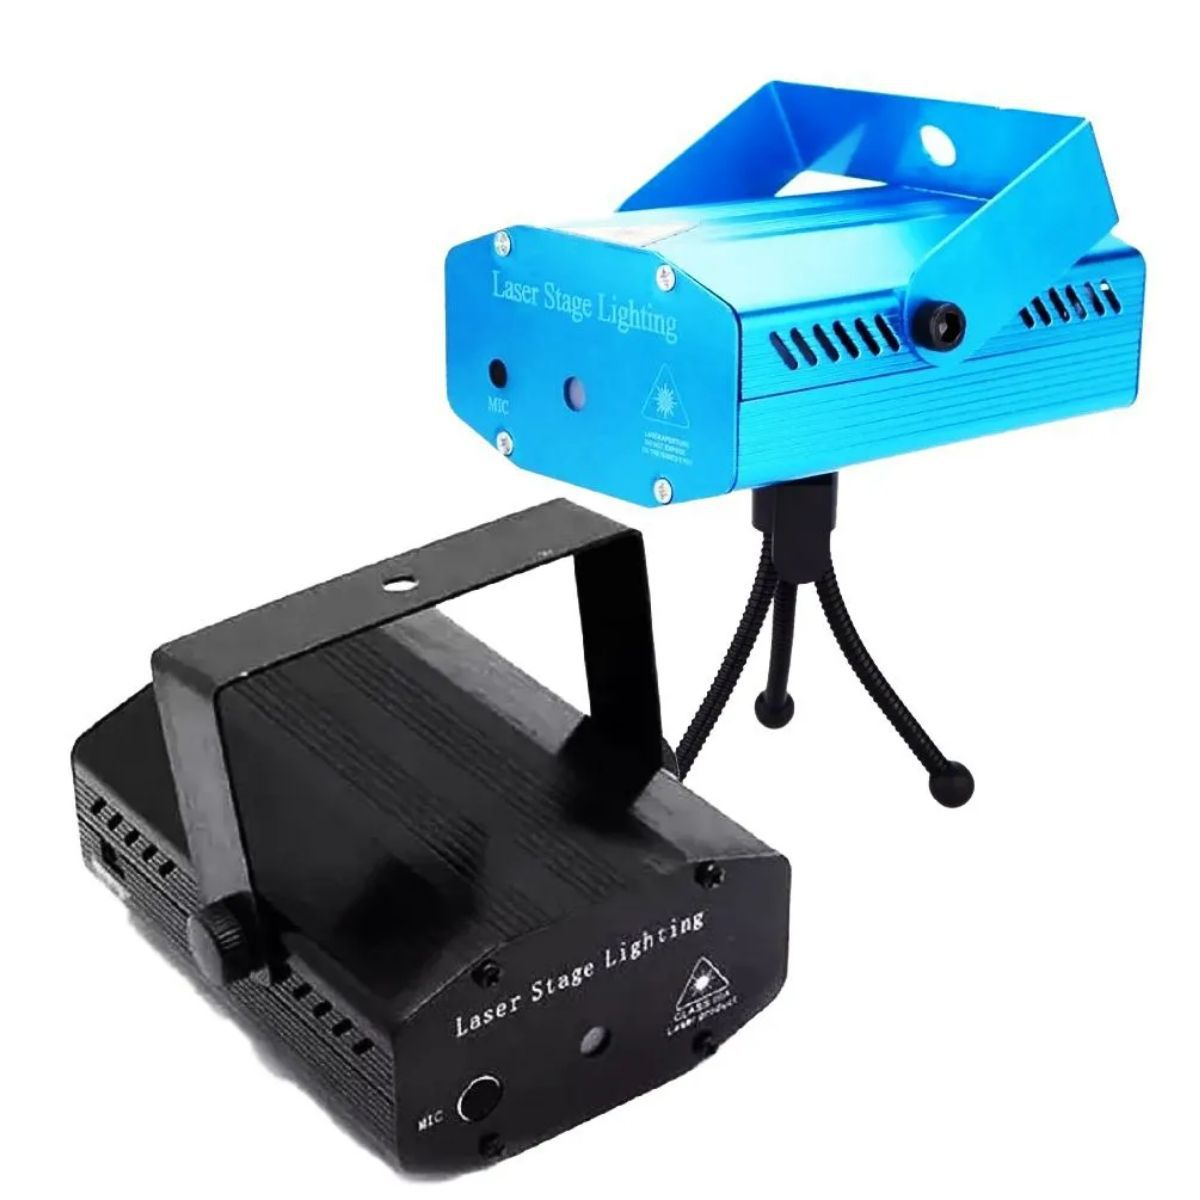 Mini Laser Projetor Holográfico Stage Lighting Preto E Azul - SD-120